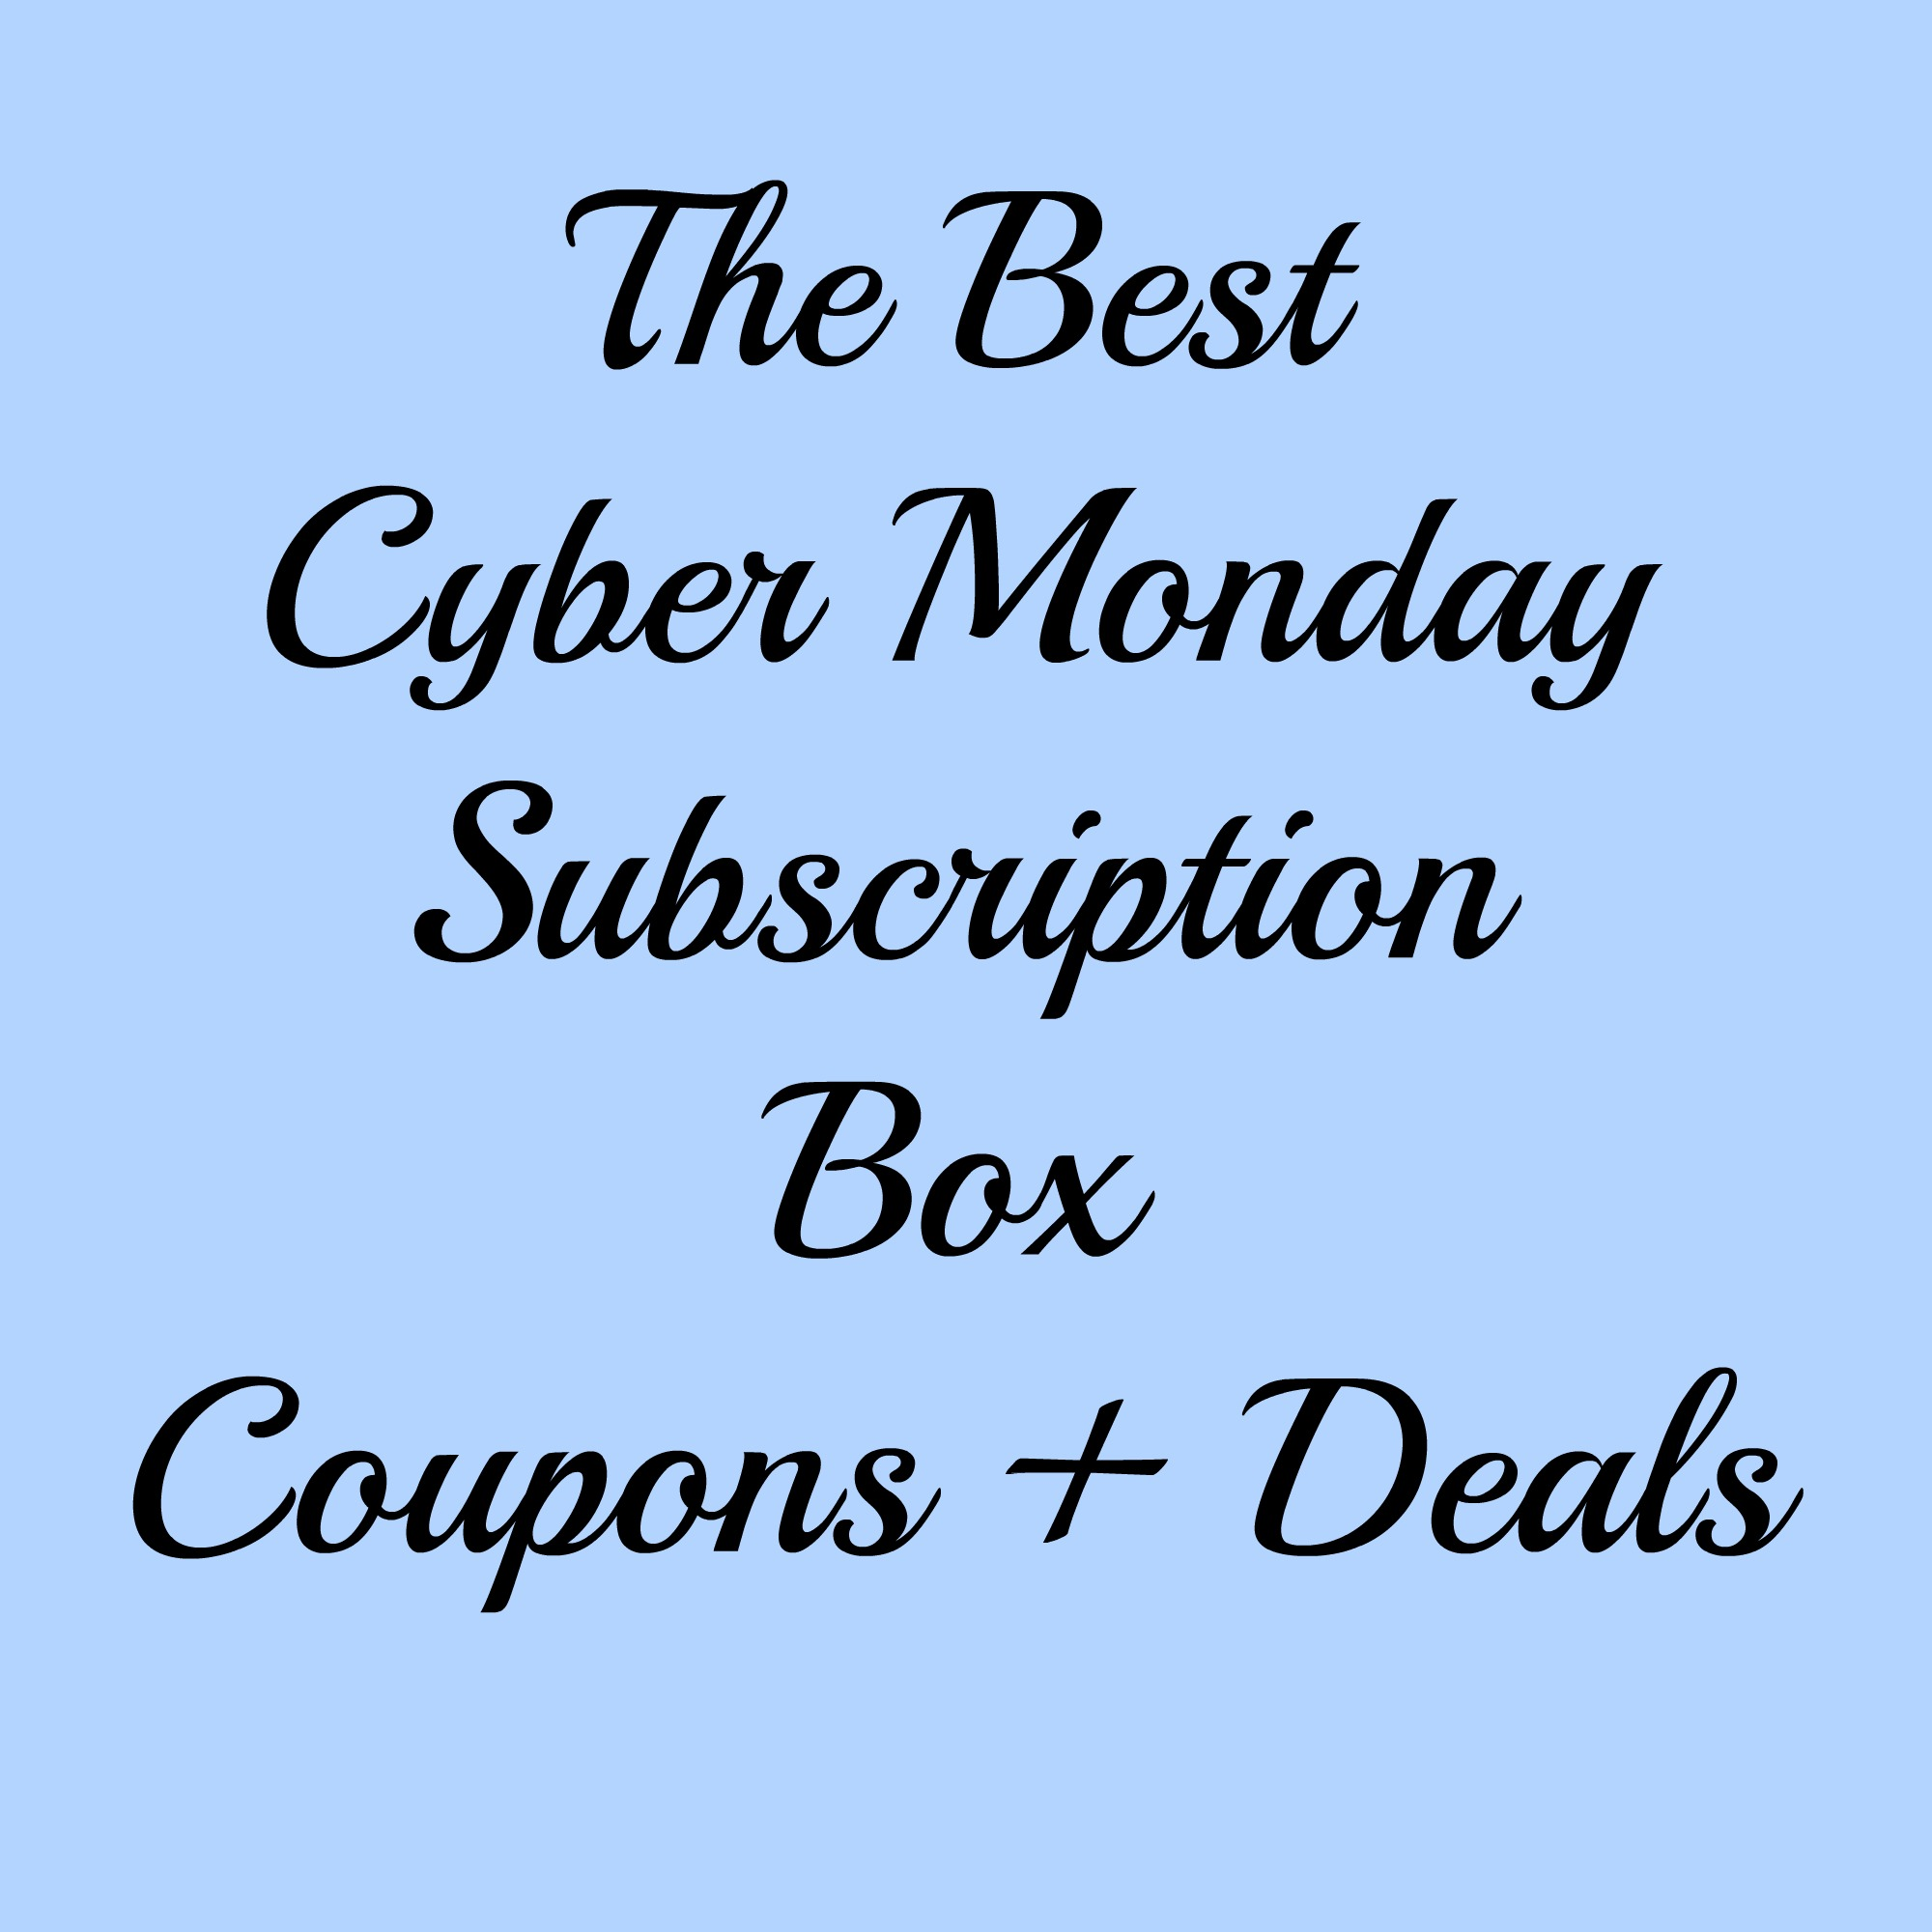 The Best Cyber Monday Subscription Box Coupons + Deals 2014